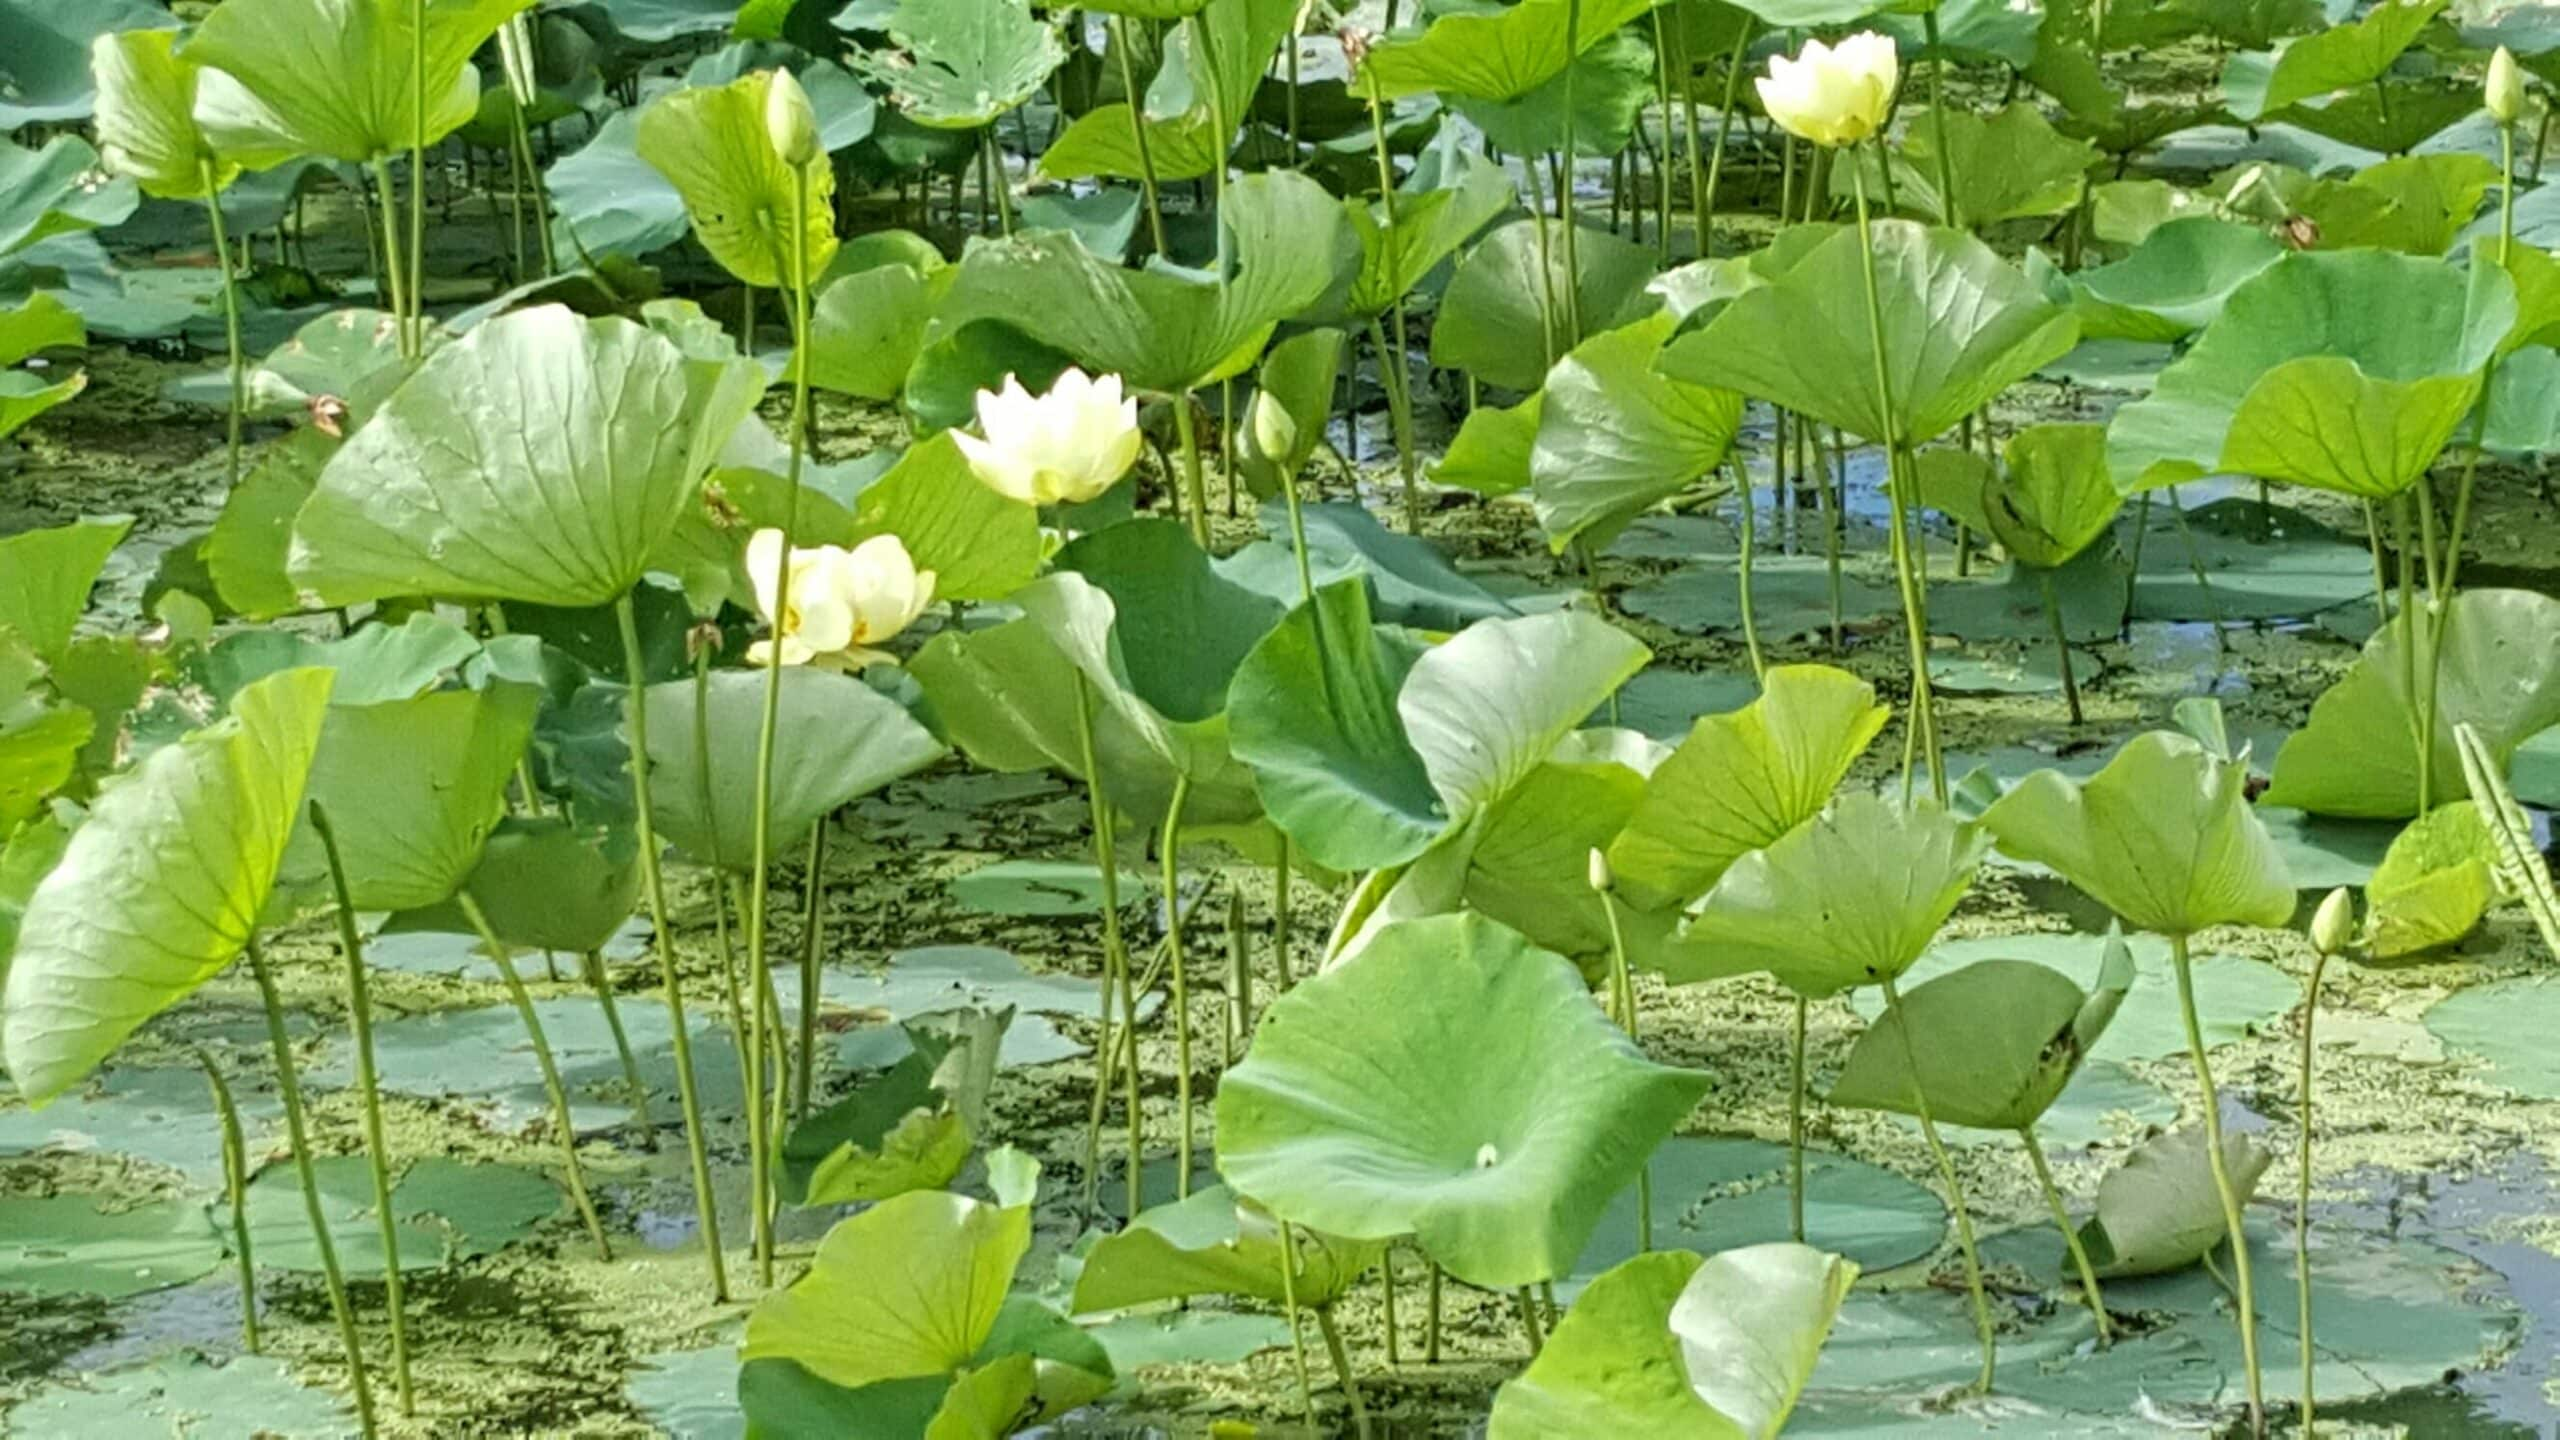 lily pond close view